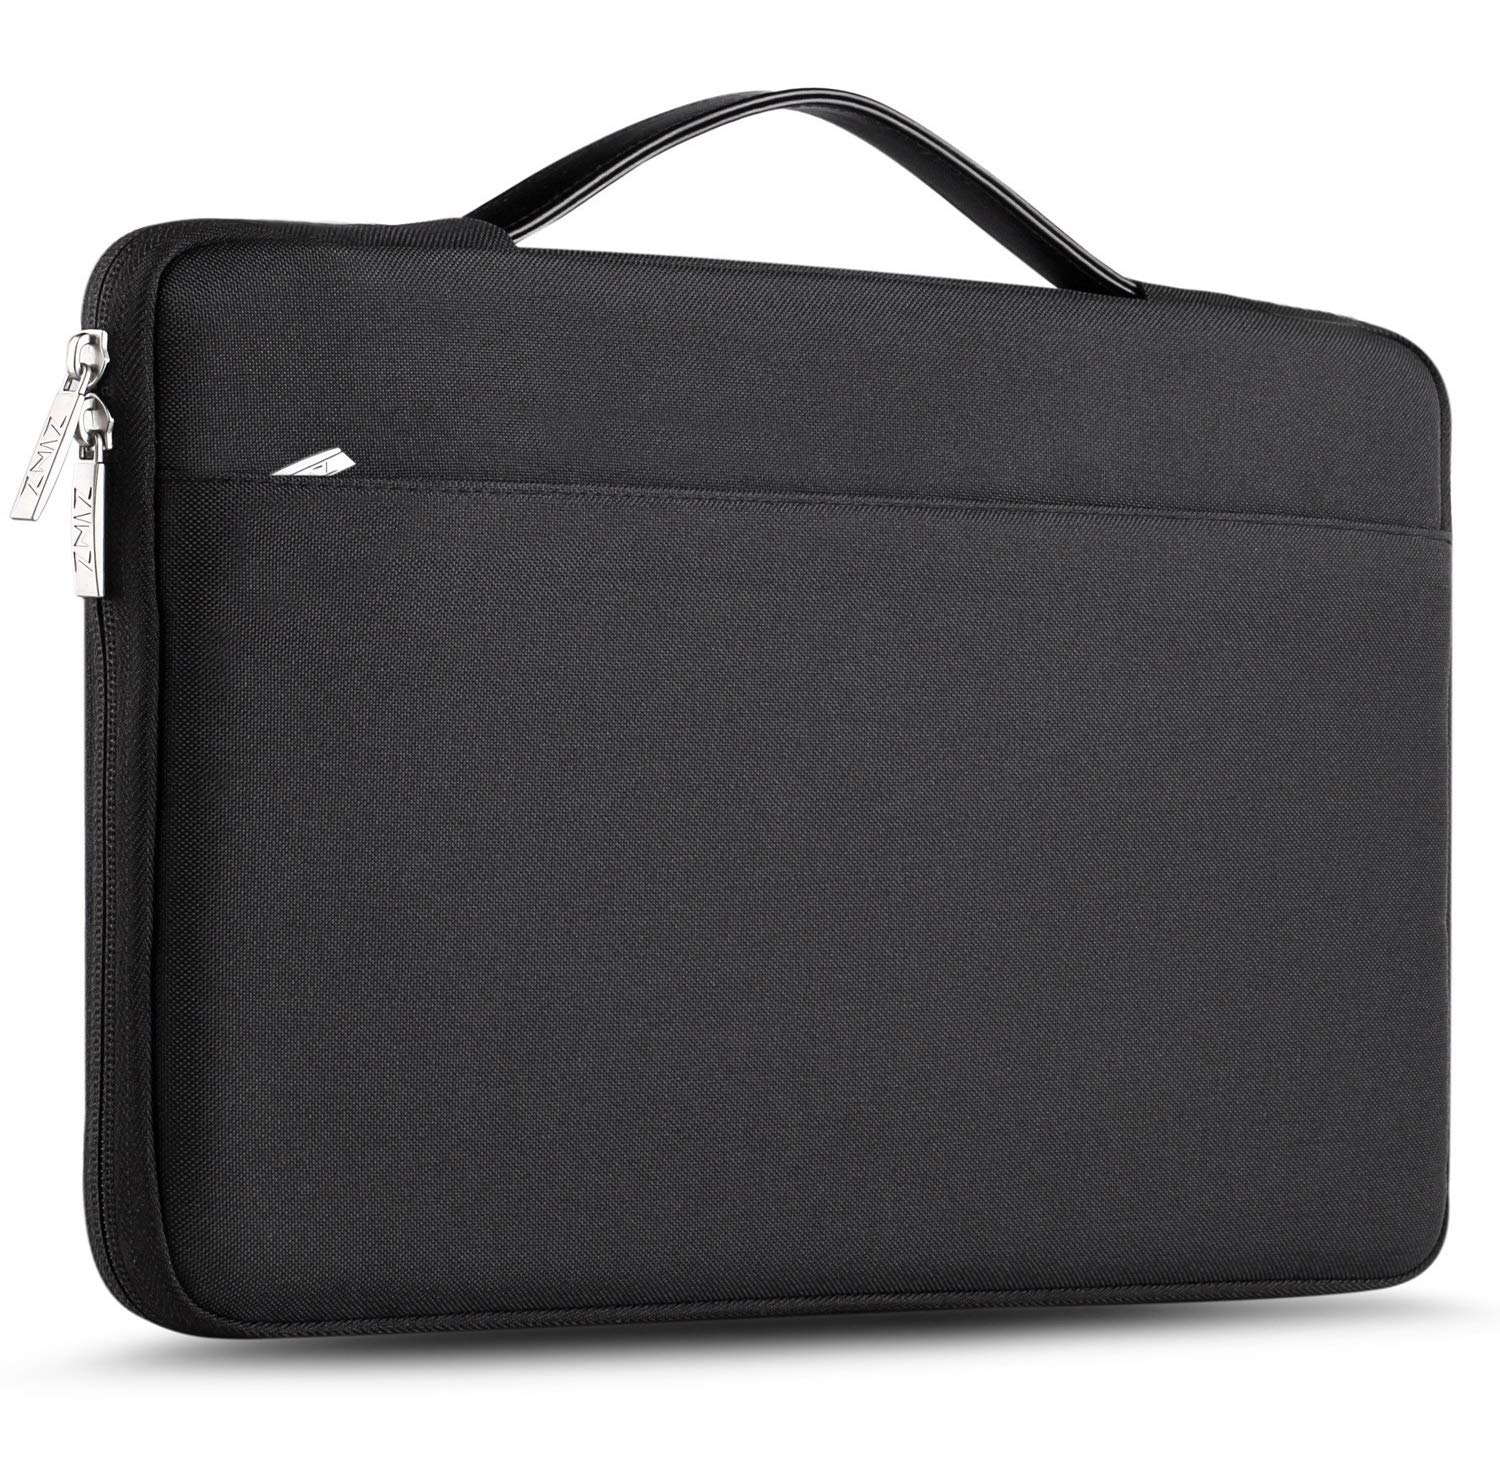 ZINZ Laptop Sleeve for 13-13.3 Inch MacBook Air| MacBook Pro Retina Late 2012 - Early 2016 | Most 14 Inch Dell/Ausu/Acer/HP/Toshiba/Lenovo,Spill-Resistant Laptop Bag Case Cover - Black